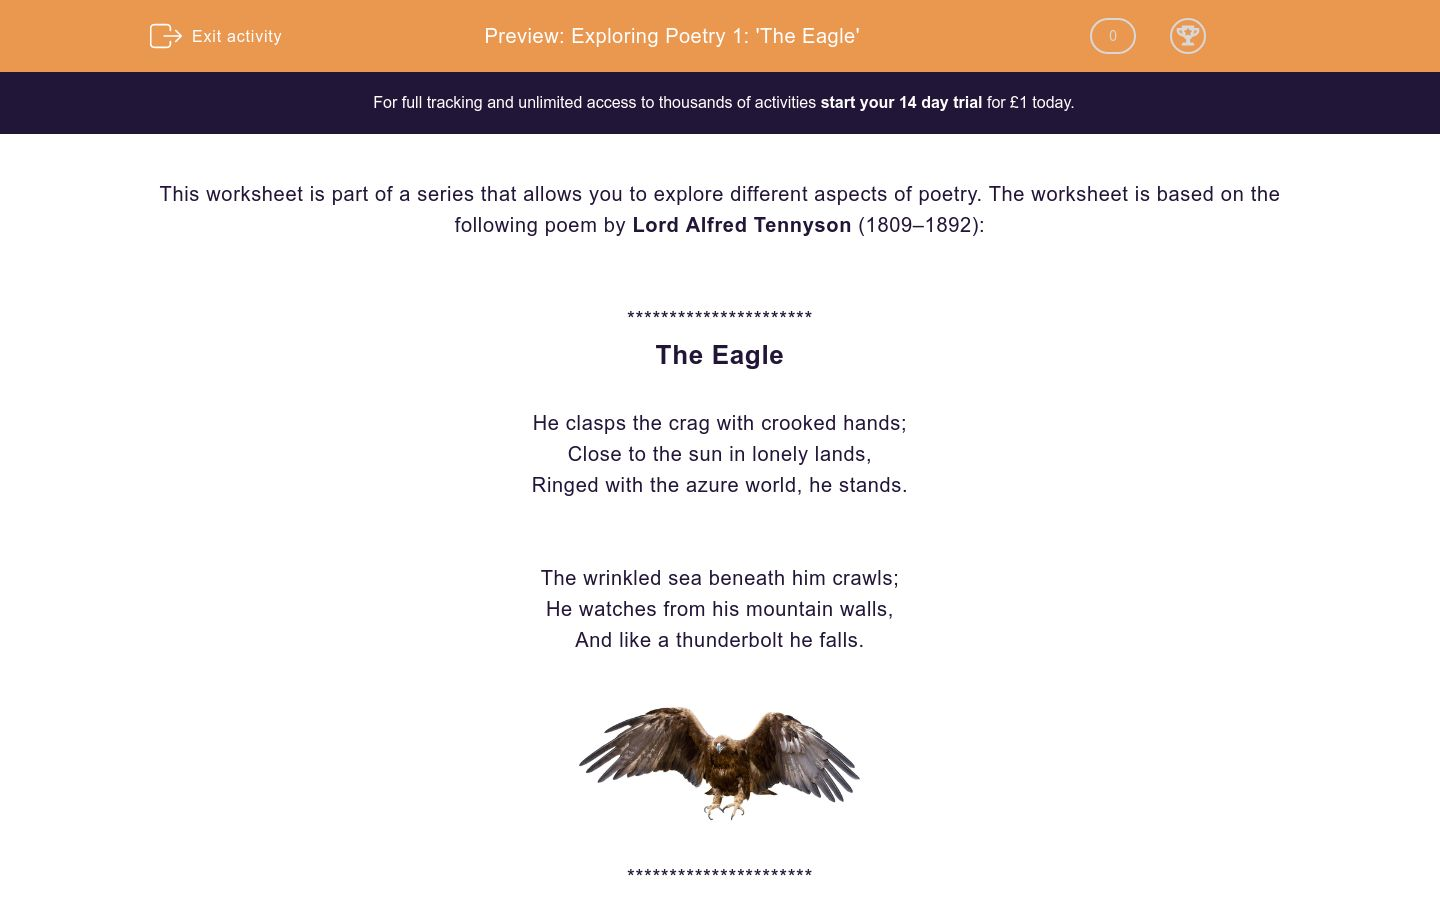 'Exploring Poetry 1: 'The Eagle'' worksheet